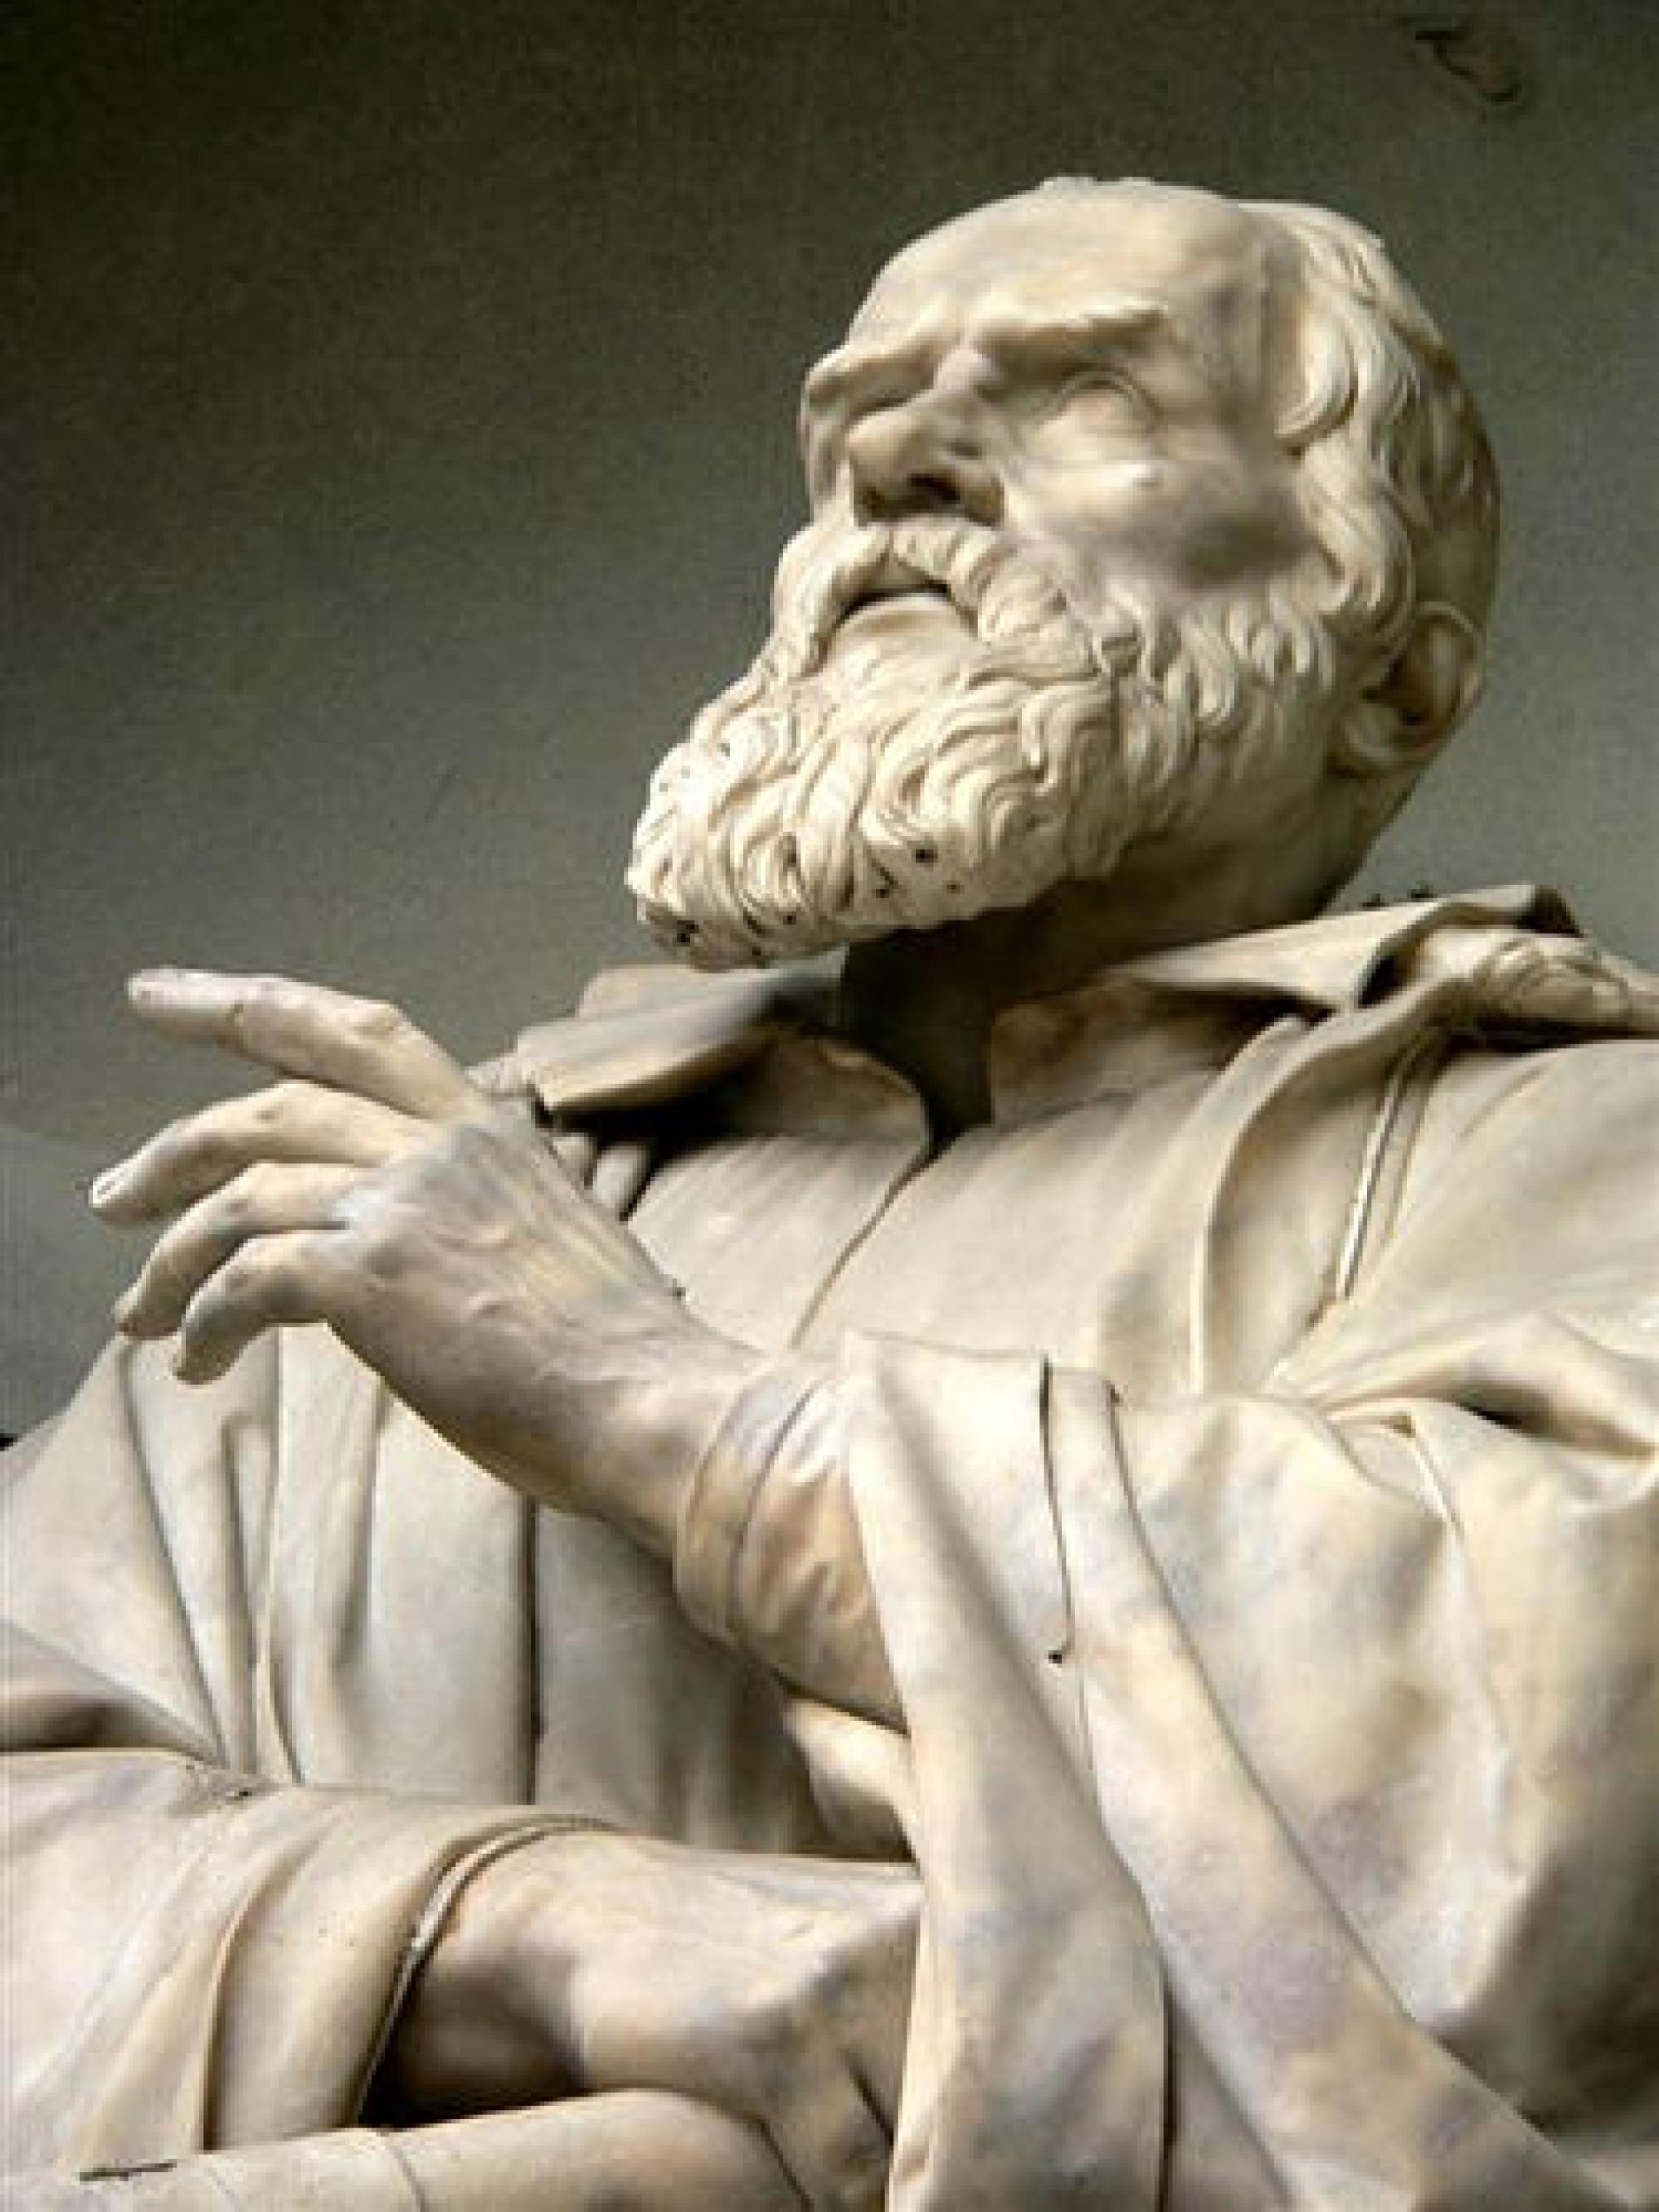 CLICK TO ENLARGE IMAGE. This 19th century sculpture of Galileo Galilei is found in a niche on the outer wall of the Uffizi Palace in Giorgio Vasari's Court just off the Piazza della Signoria in Florence, Italy.